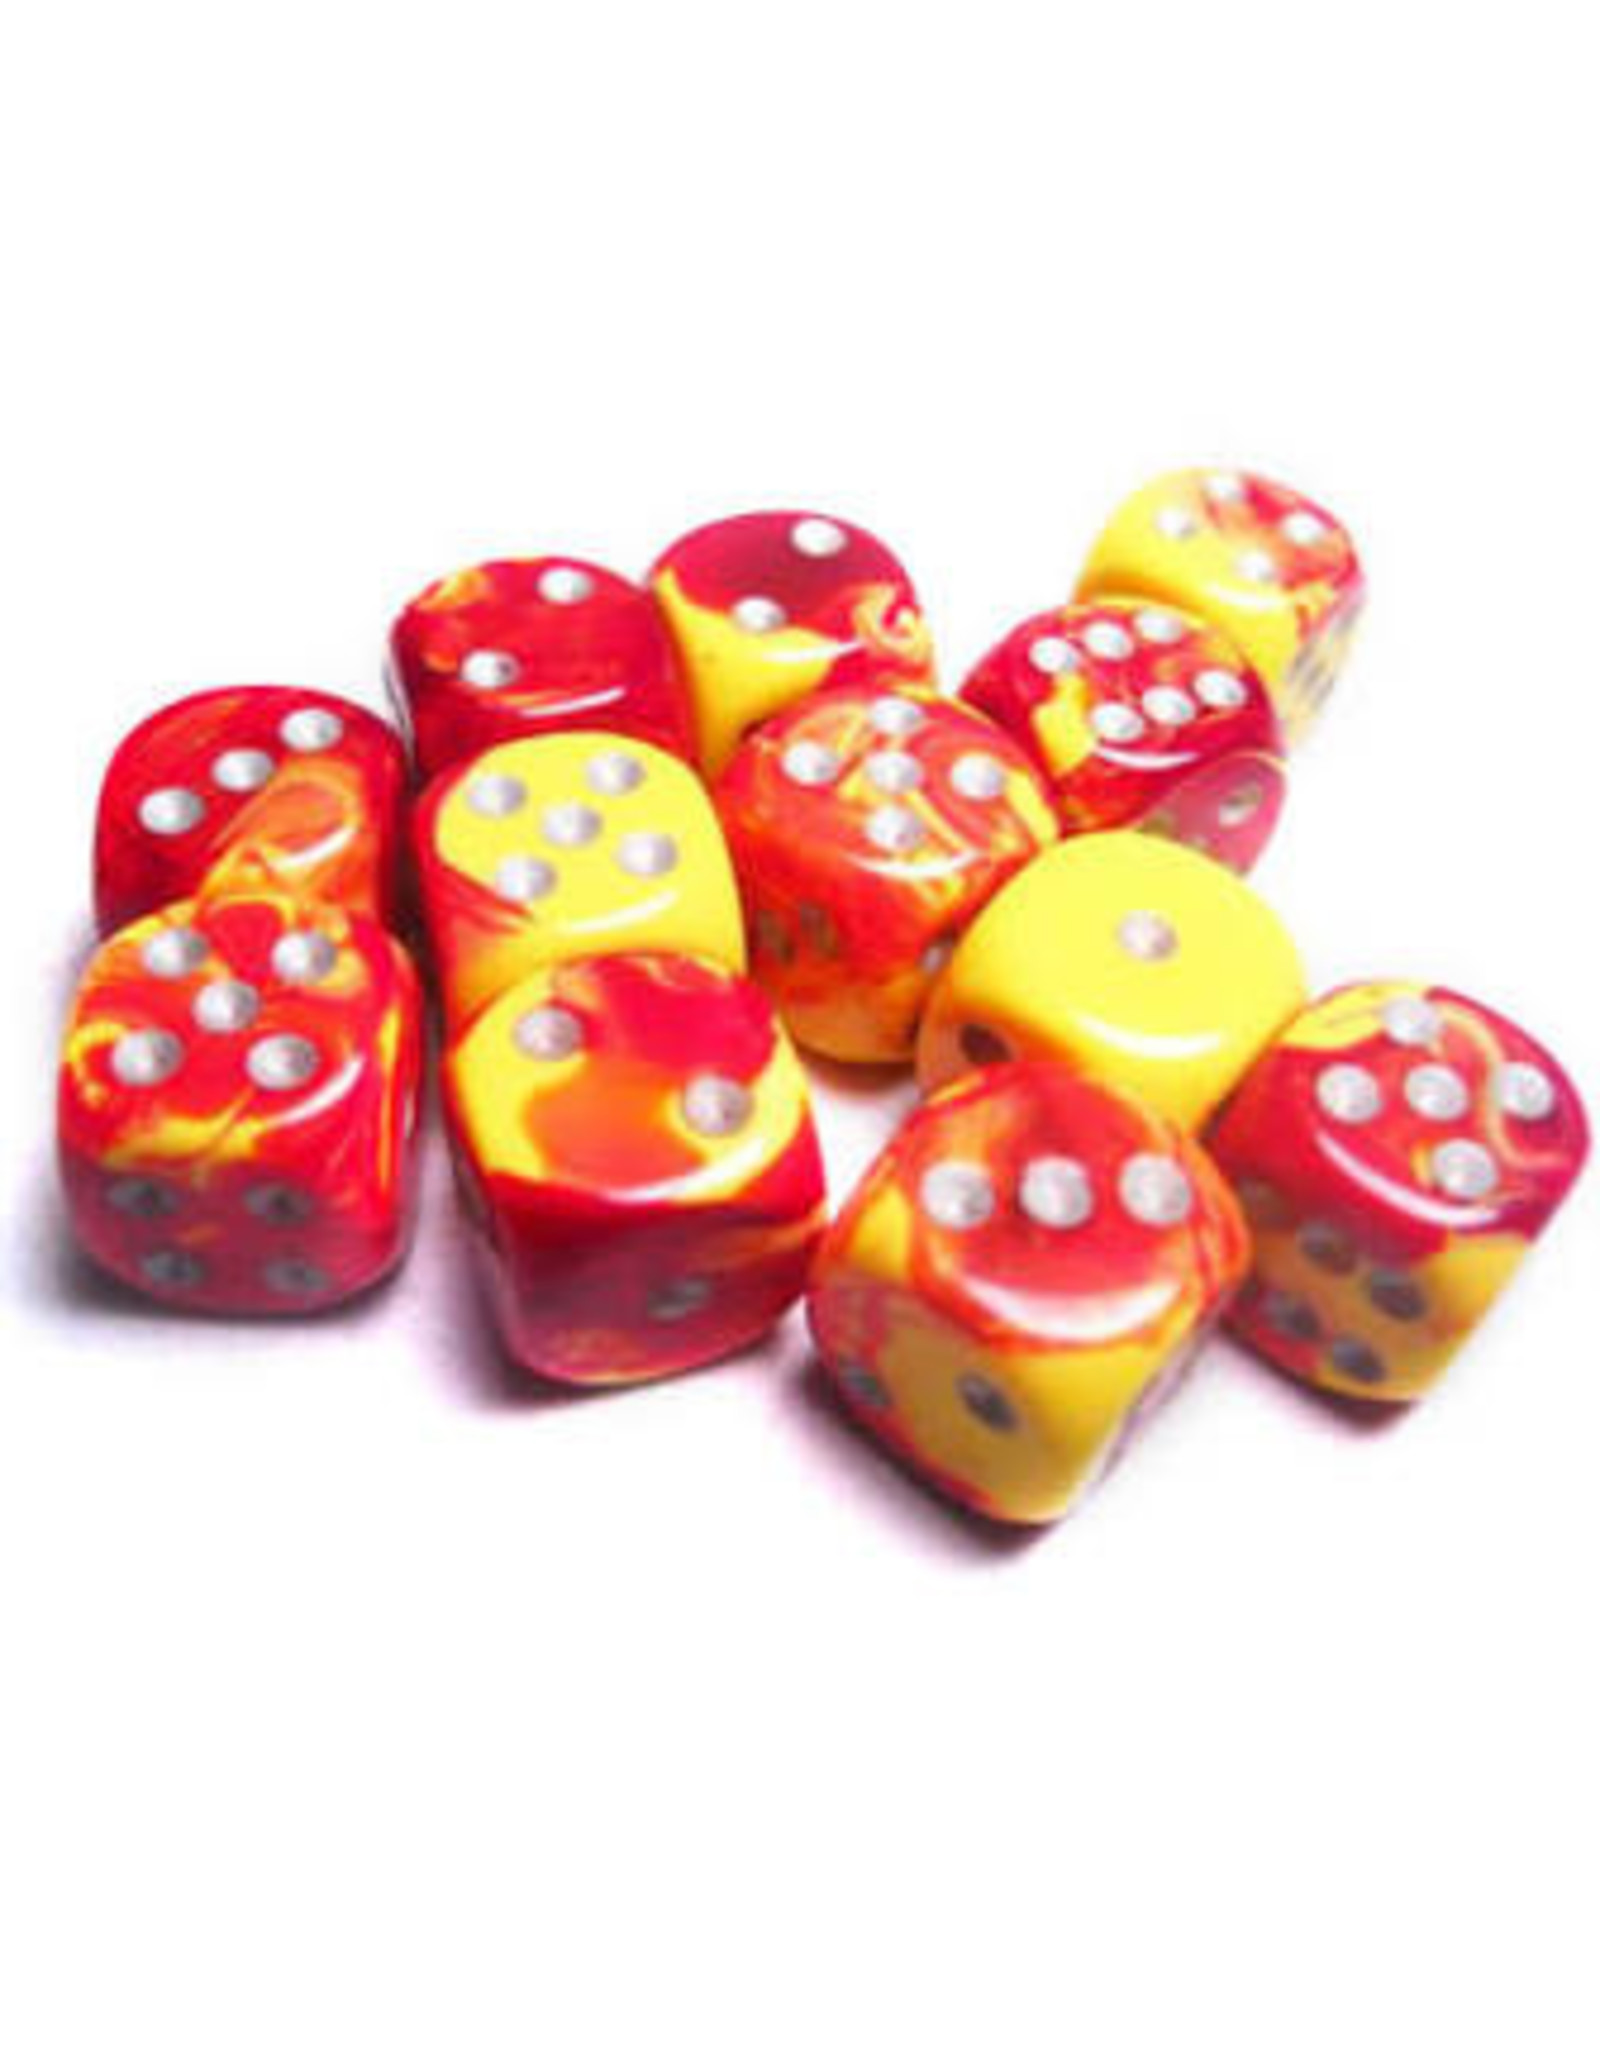 Chessex Gemini 16mm D6 RED YEL w/ WHT